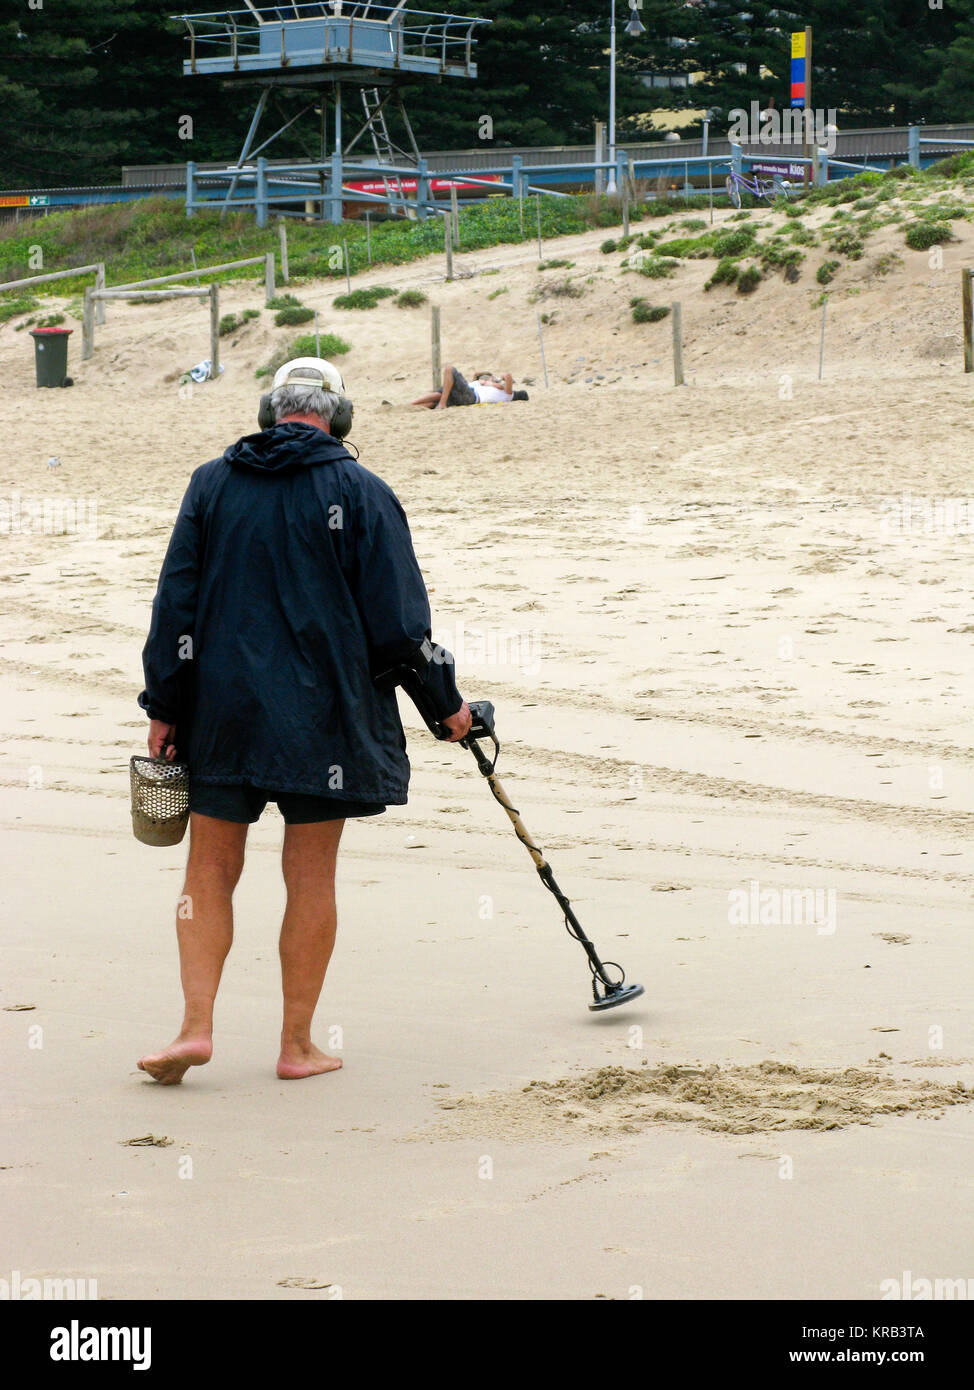 LOOKING FOR METAL with detector at a beach Sydney Australia 2009 - Stock Image